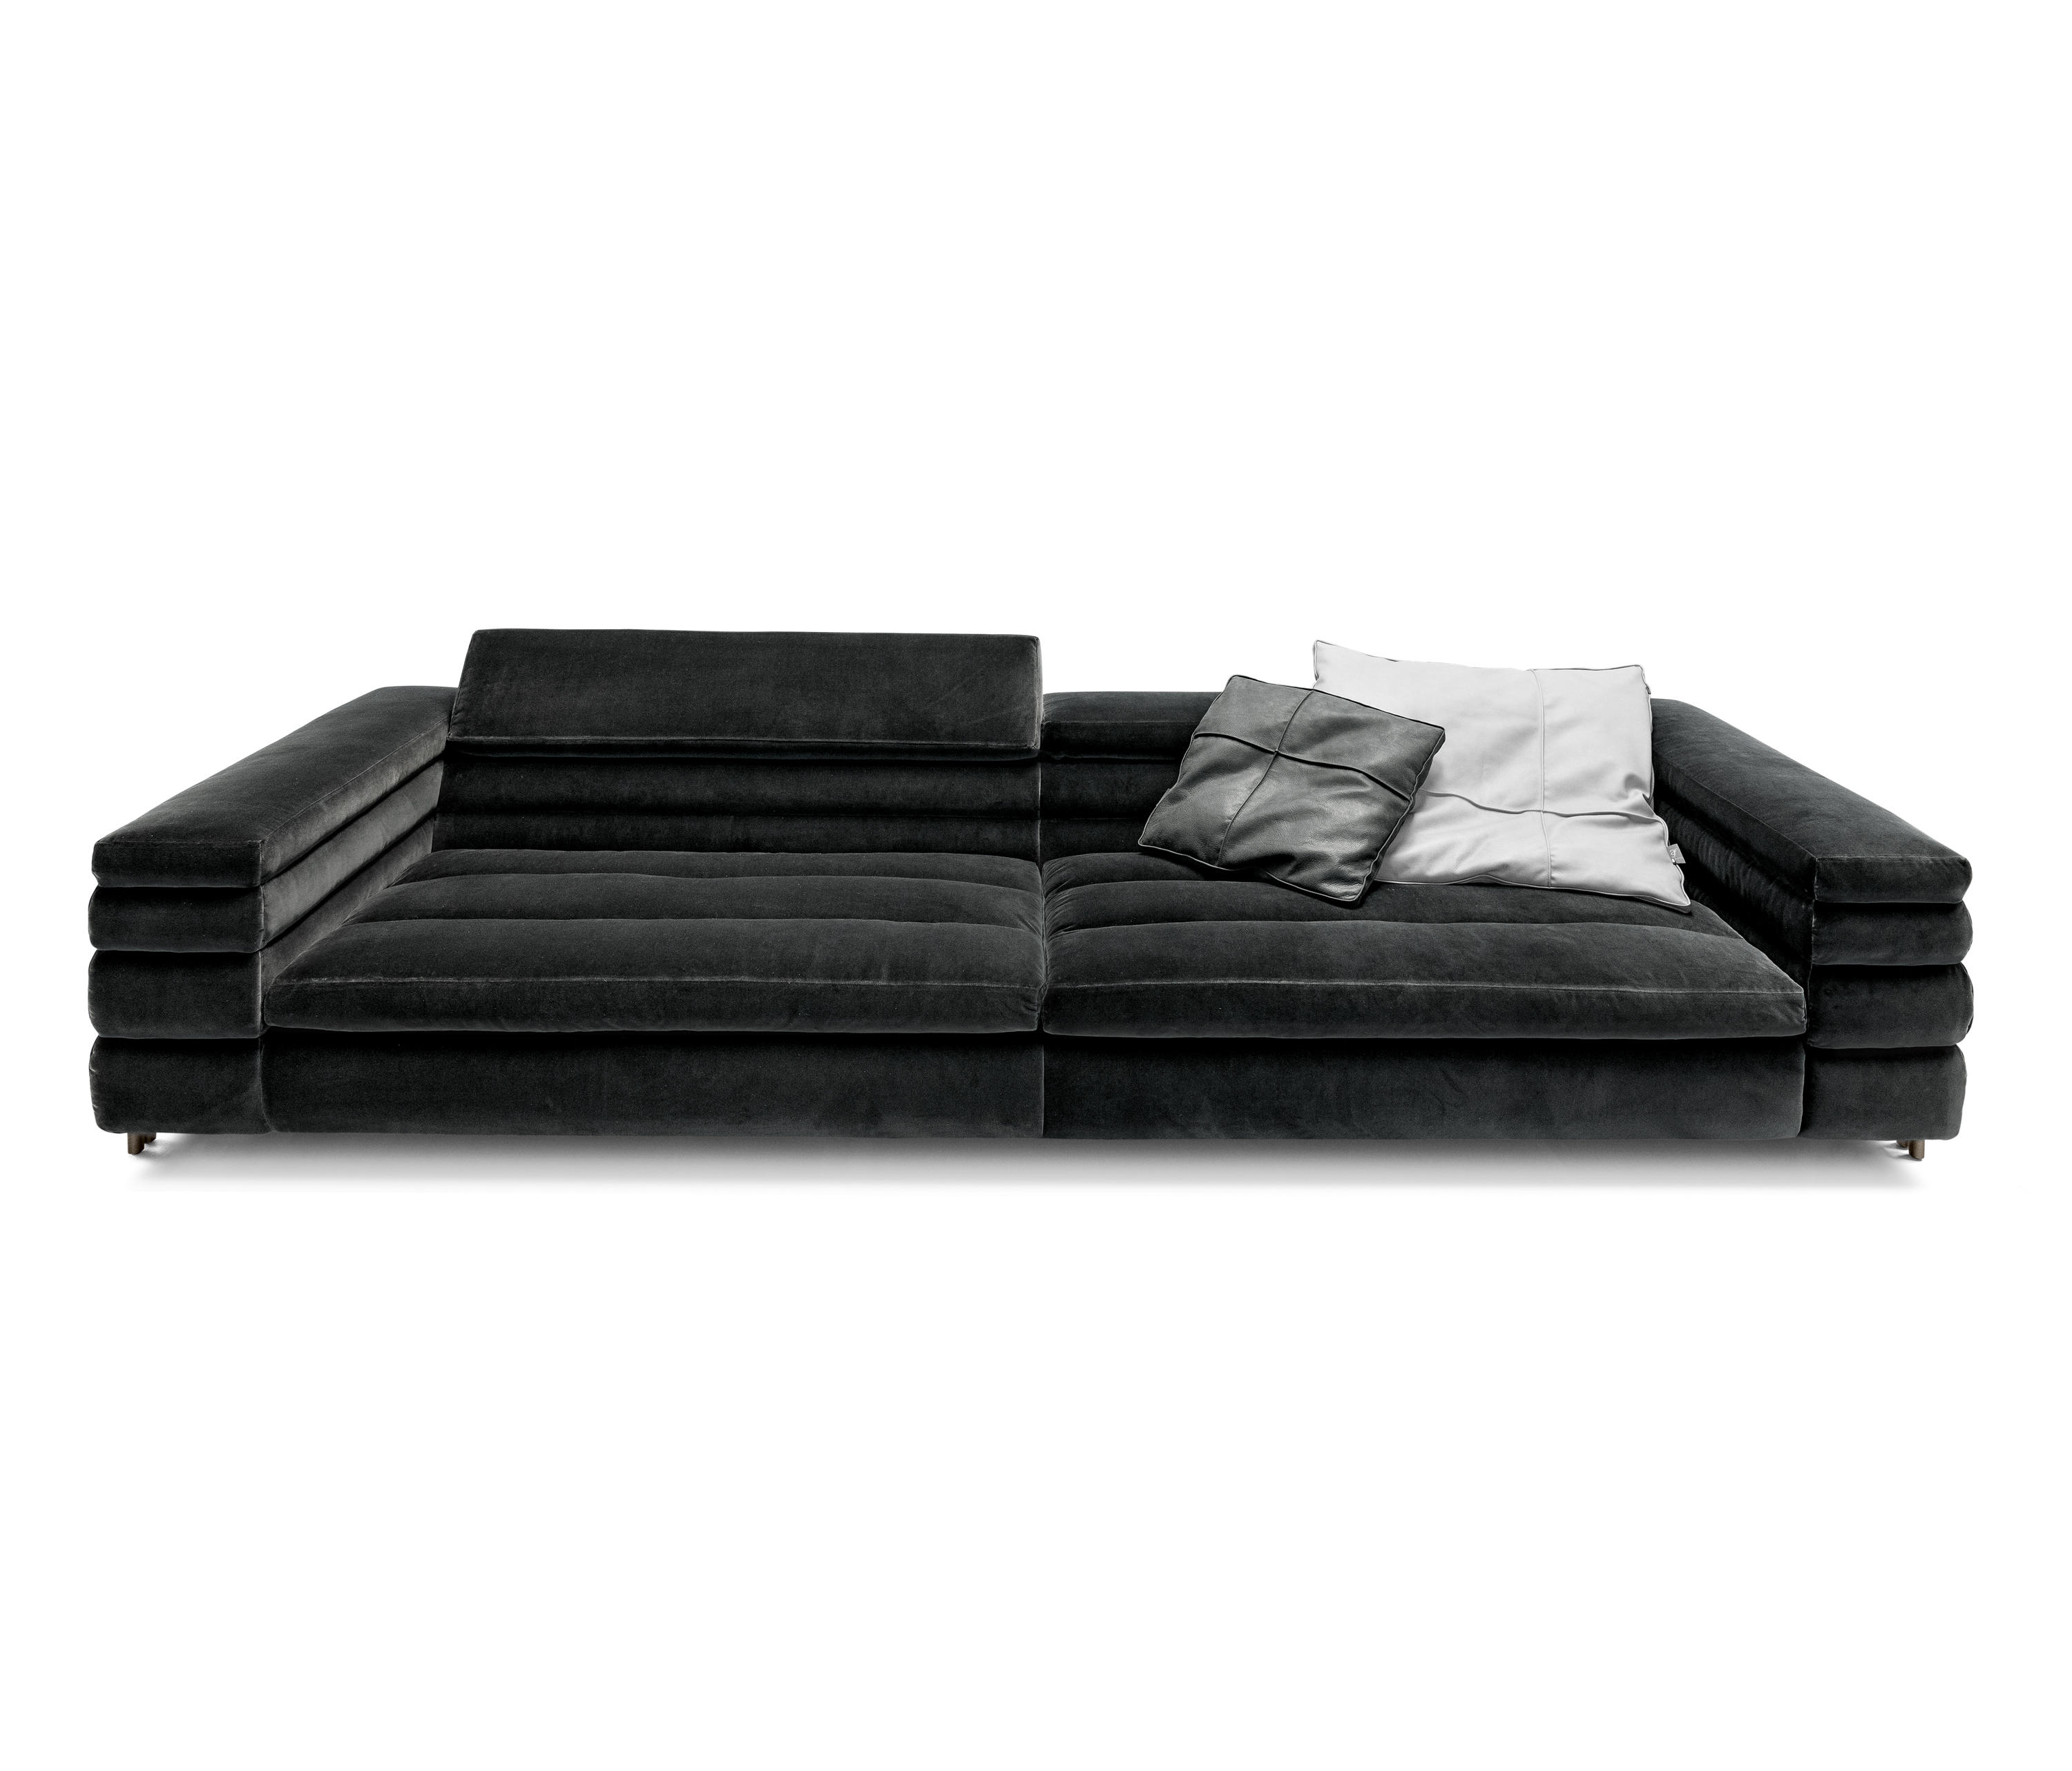 Mayfair Sofas From Arketipo Architonic